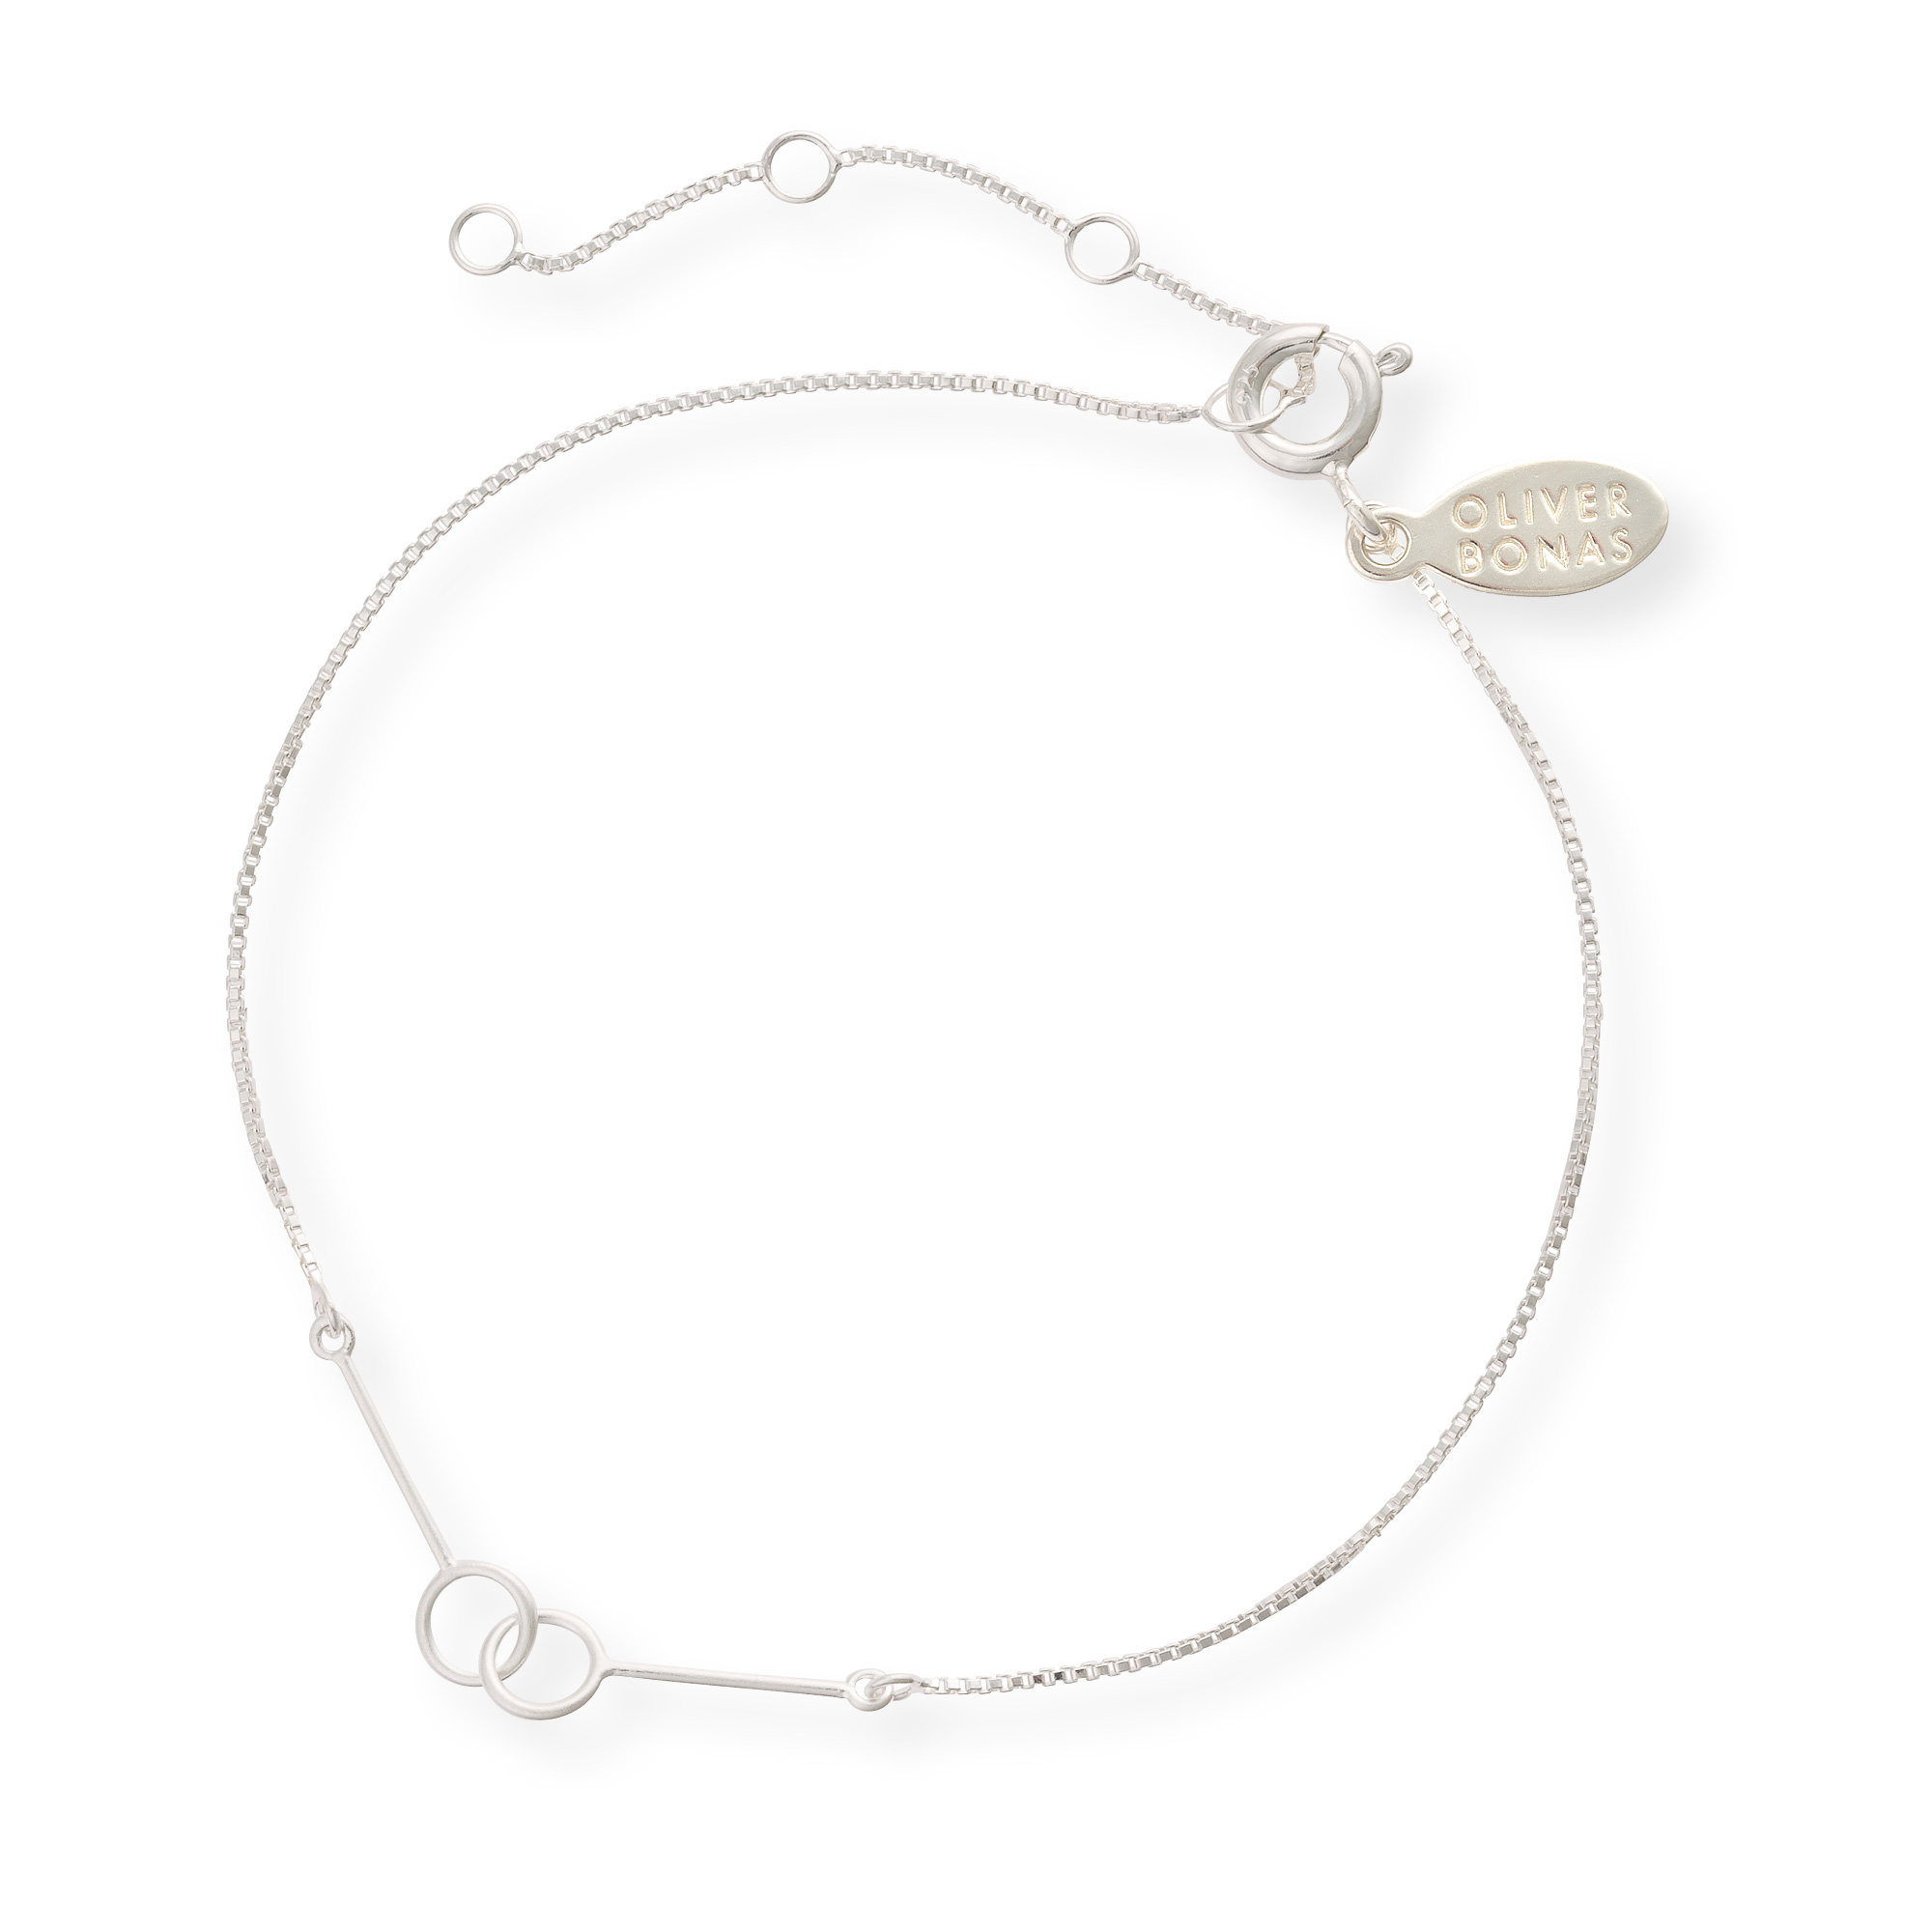 with bangle bangles product filled charm bracelet small two charms k rose images bracelets boys sterling silver beads zoom plated gold